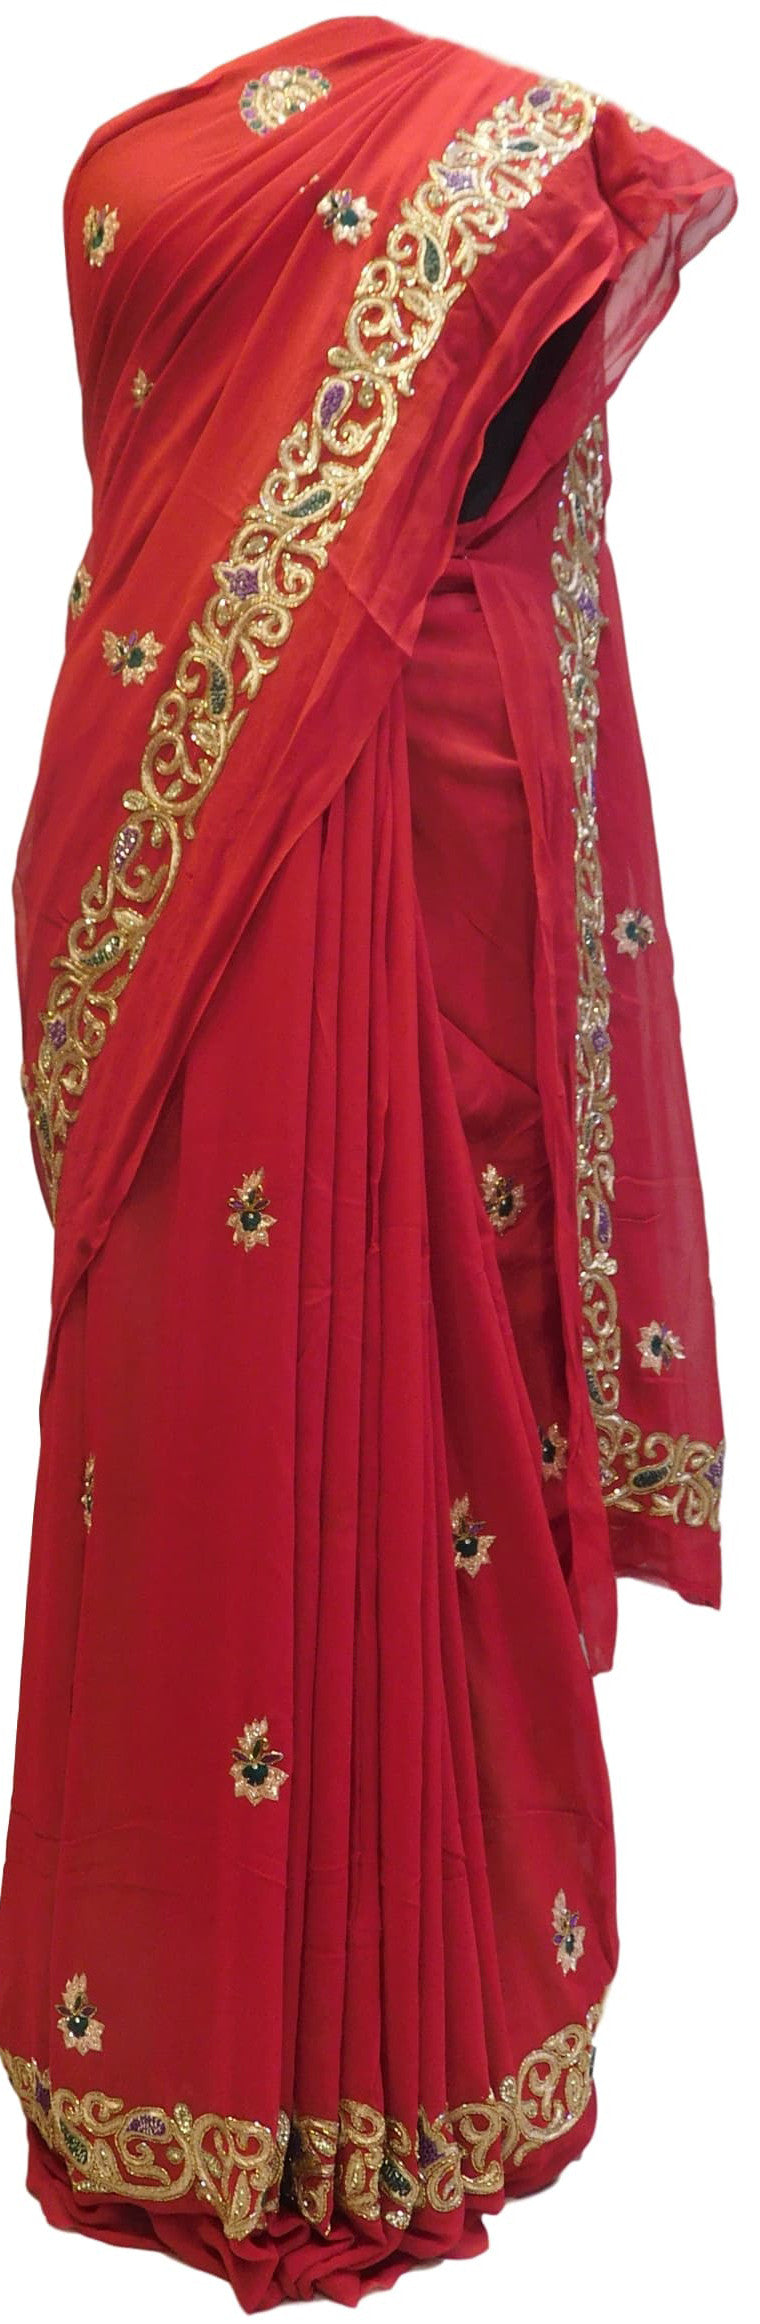 Red Designer Georgette (Viscos) Hand Embroidery Work Saree Sari